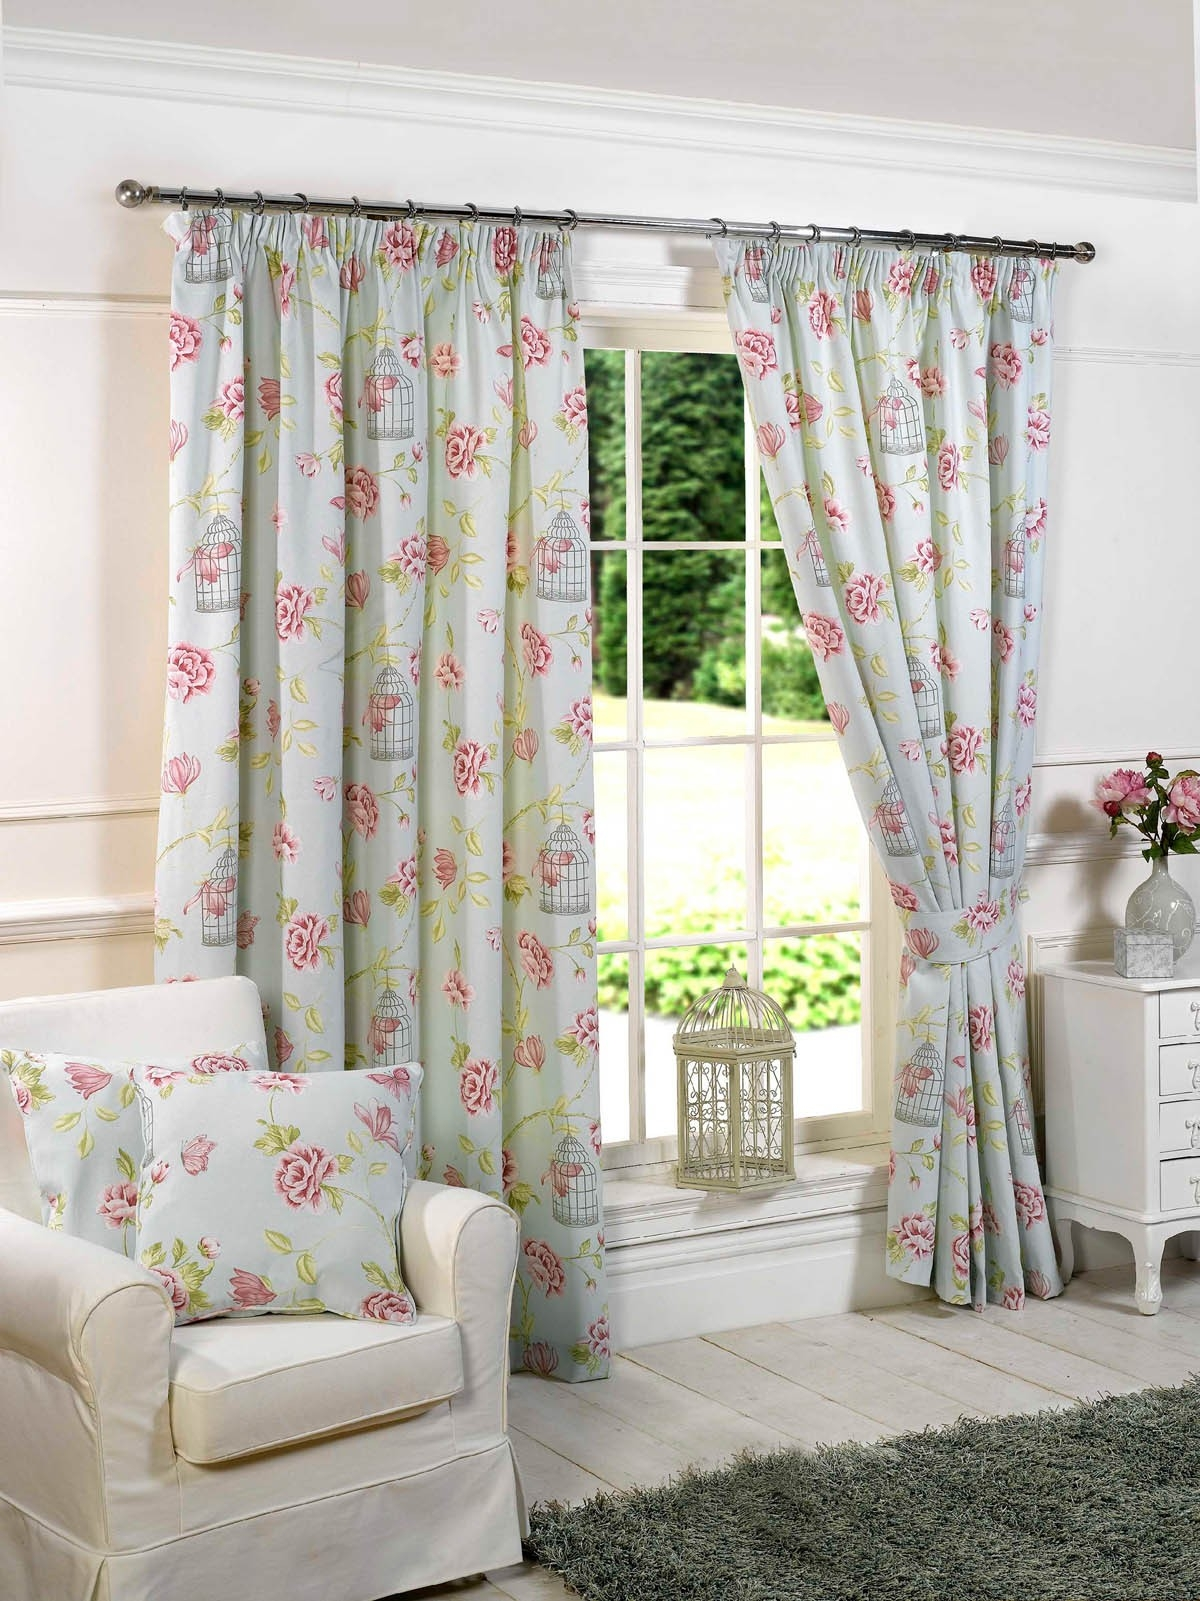 How To Hang Curtains In Bay Window Furniture Glugu Inside Ready Made Curtains For Large Bay Windows (View 8 of 15)